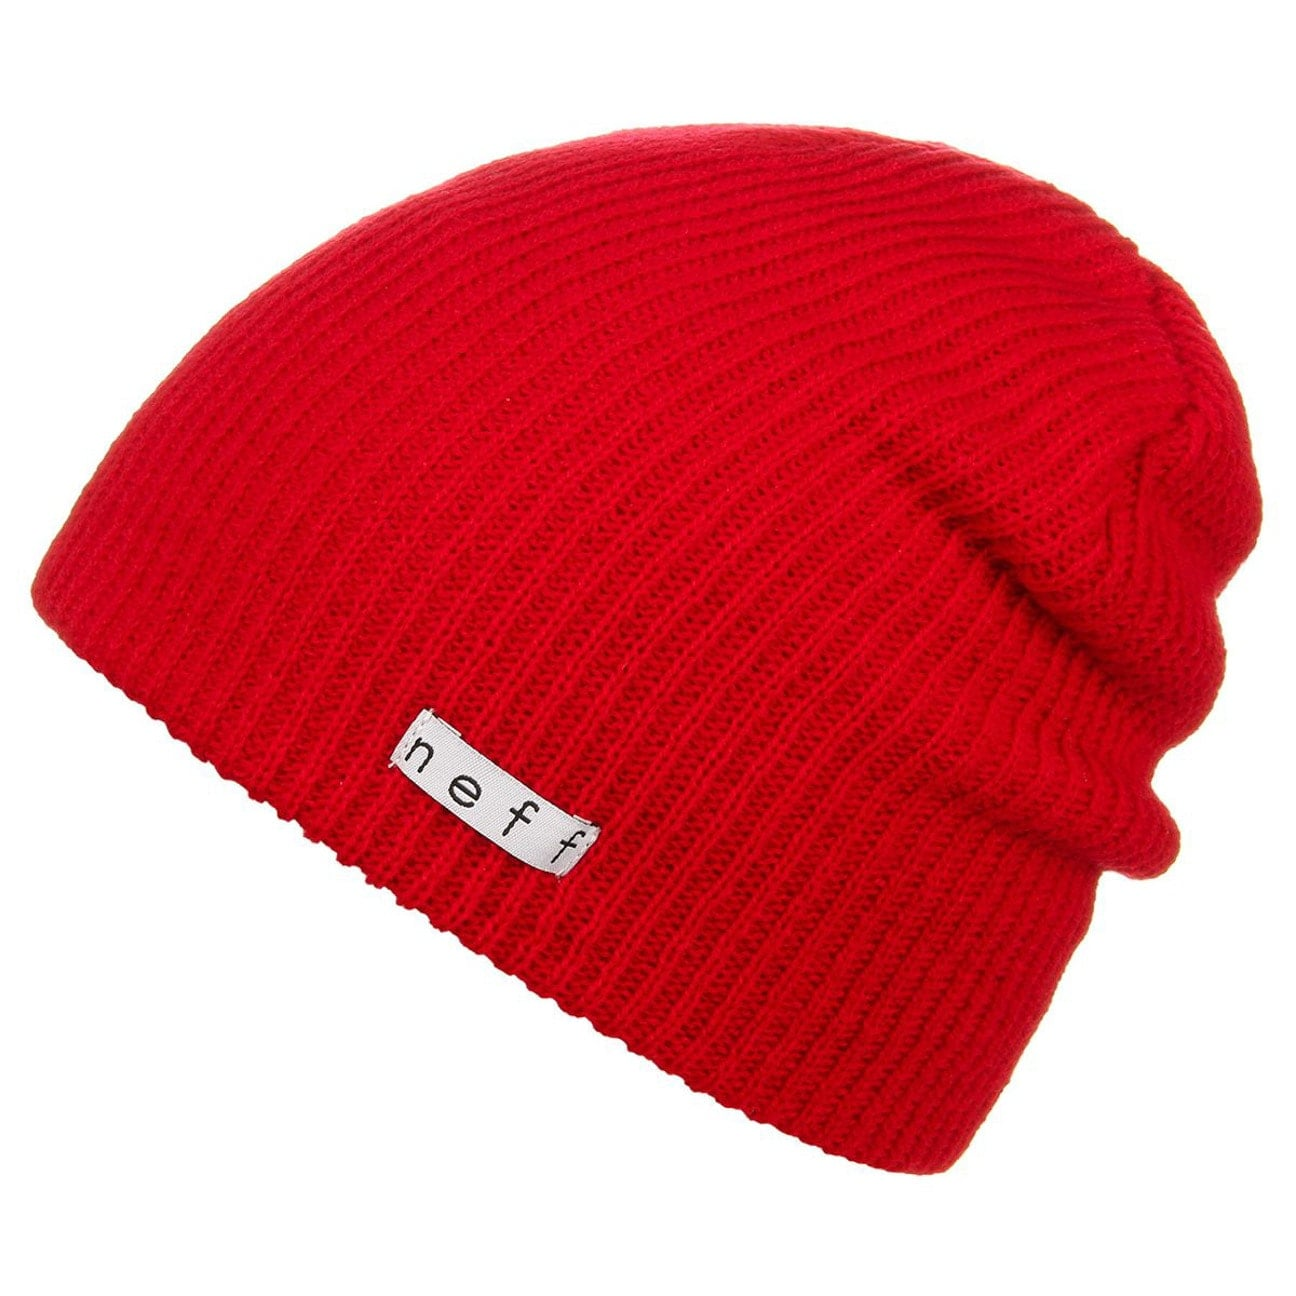 ad53f8b9b7 Daily Beanie by neff, GBP 18,95 --> Hats, caps & beanies shop online ...